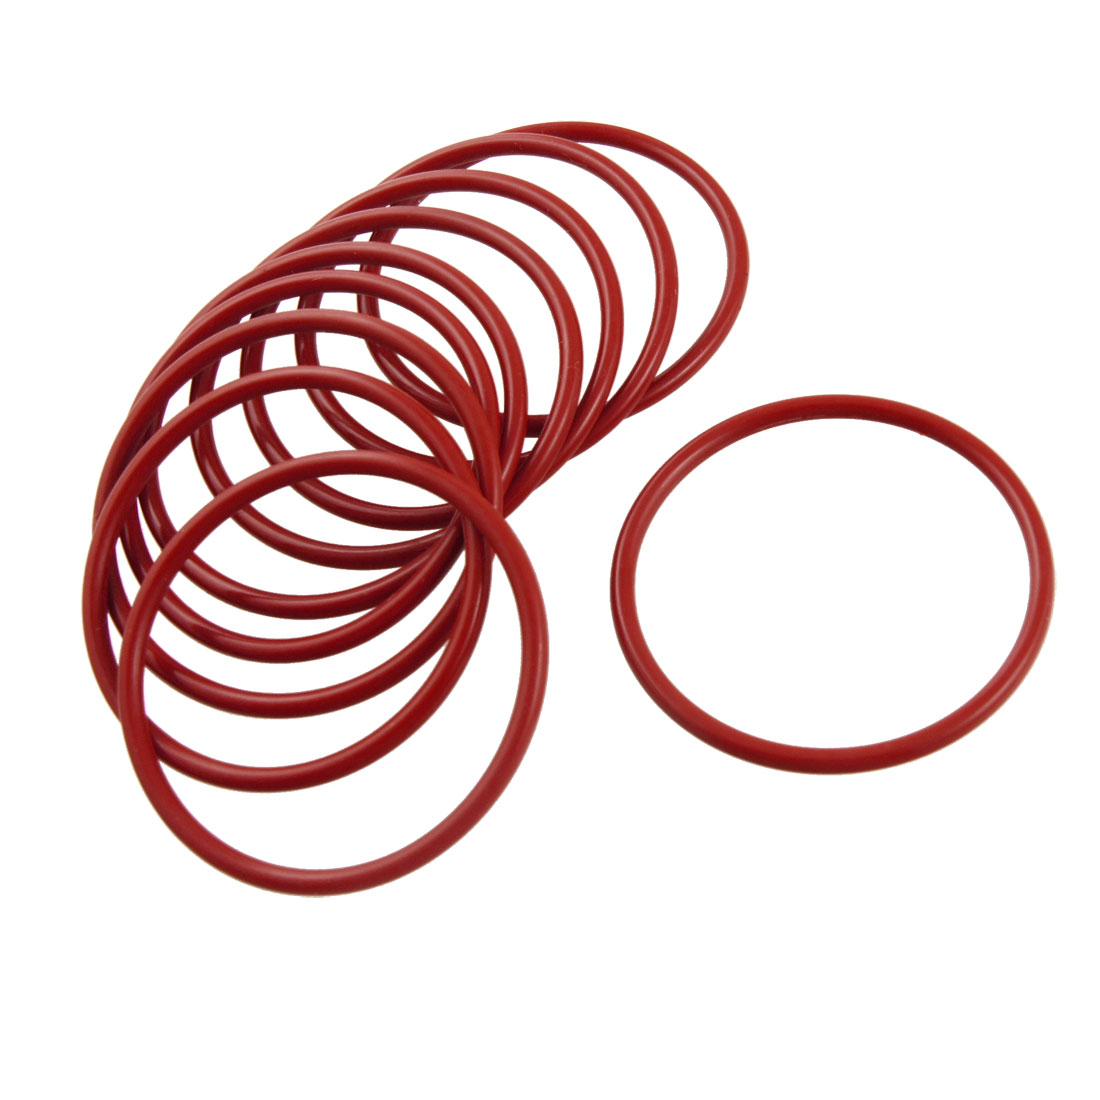 10 Pcs Industrial Silicone O Ring Seal Washer 49mm x 55mm x 3mm